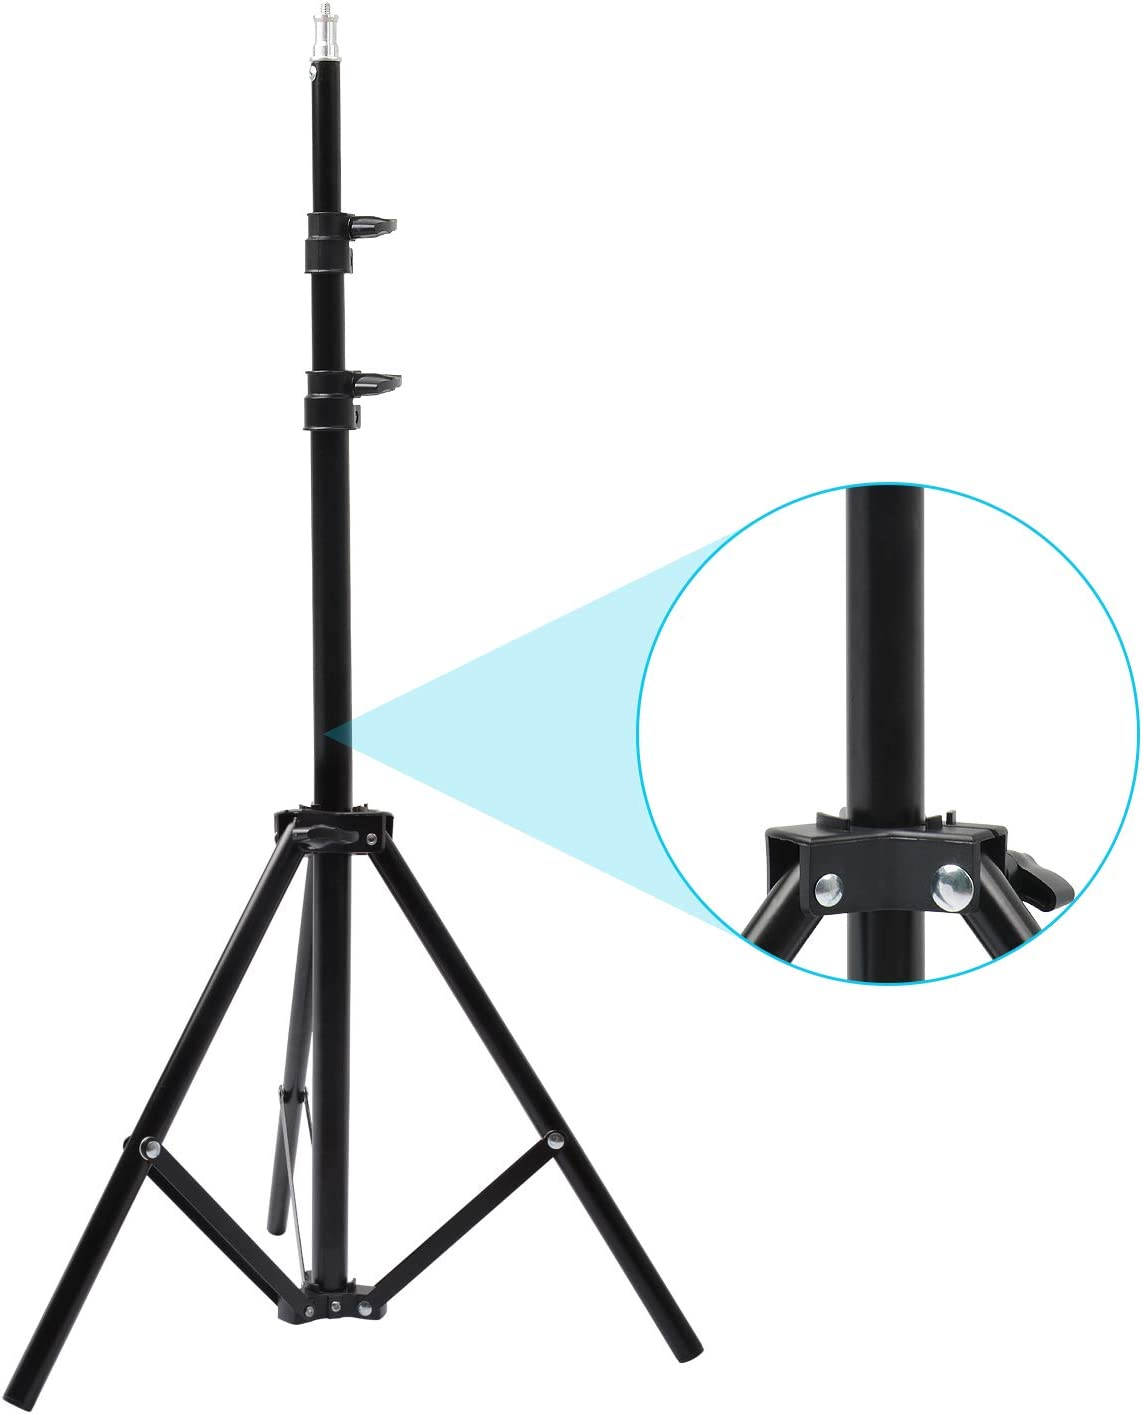 Product Riqiorod 5.5-Foot Light Stand Tripod Aluminum Max 88% OFF Photography